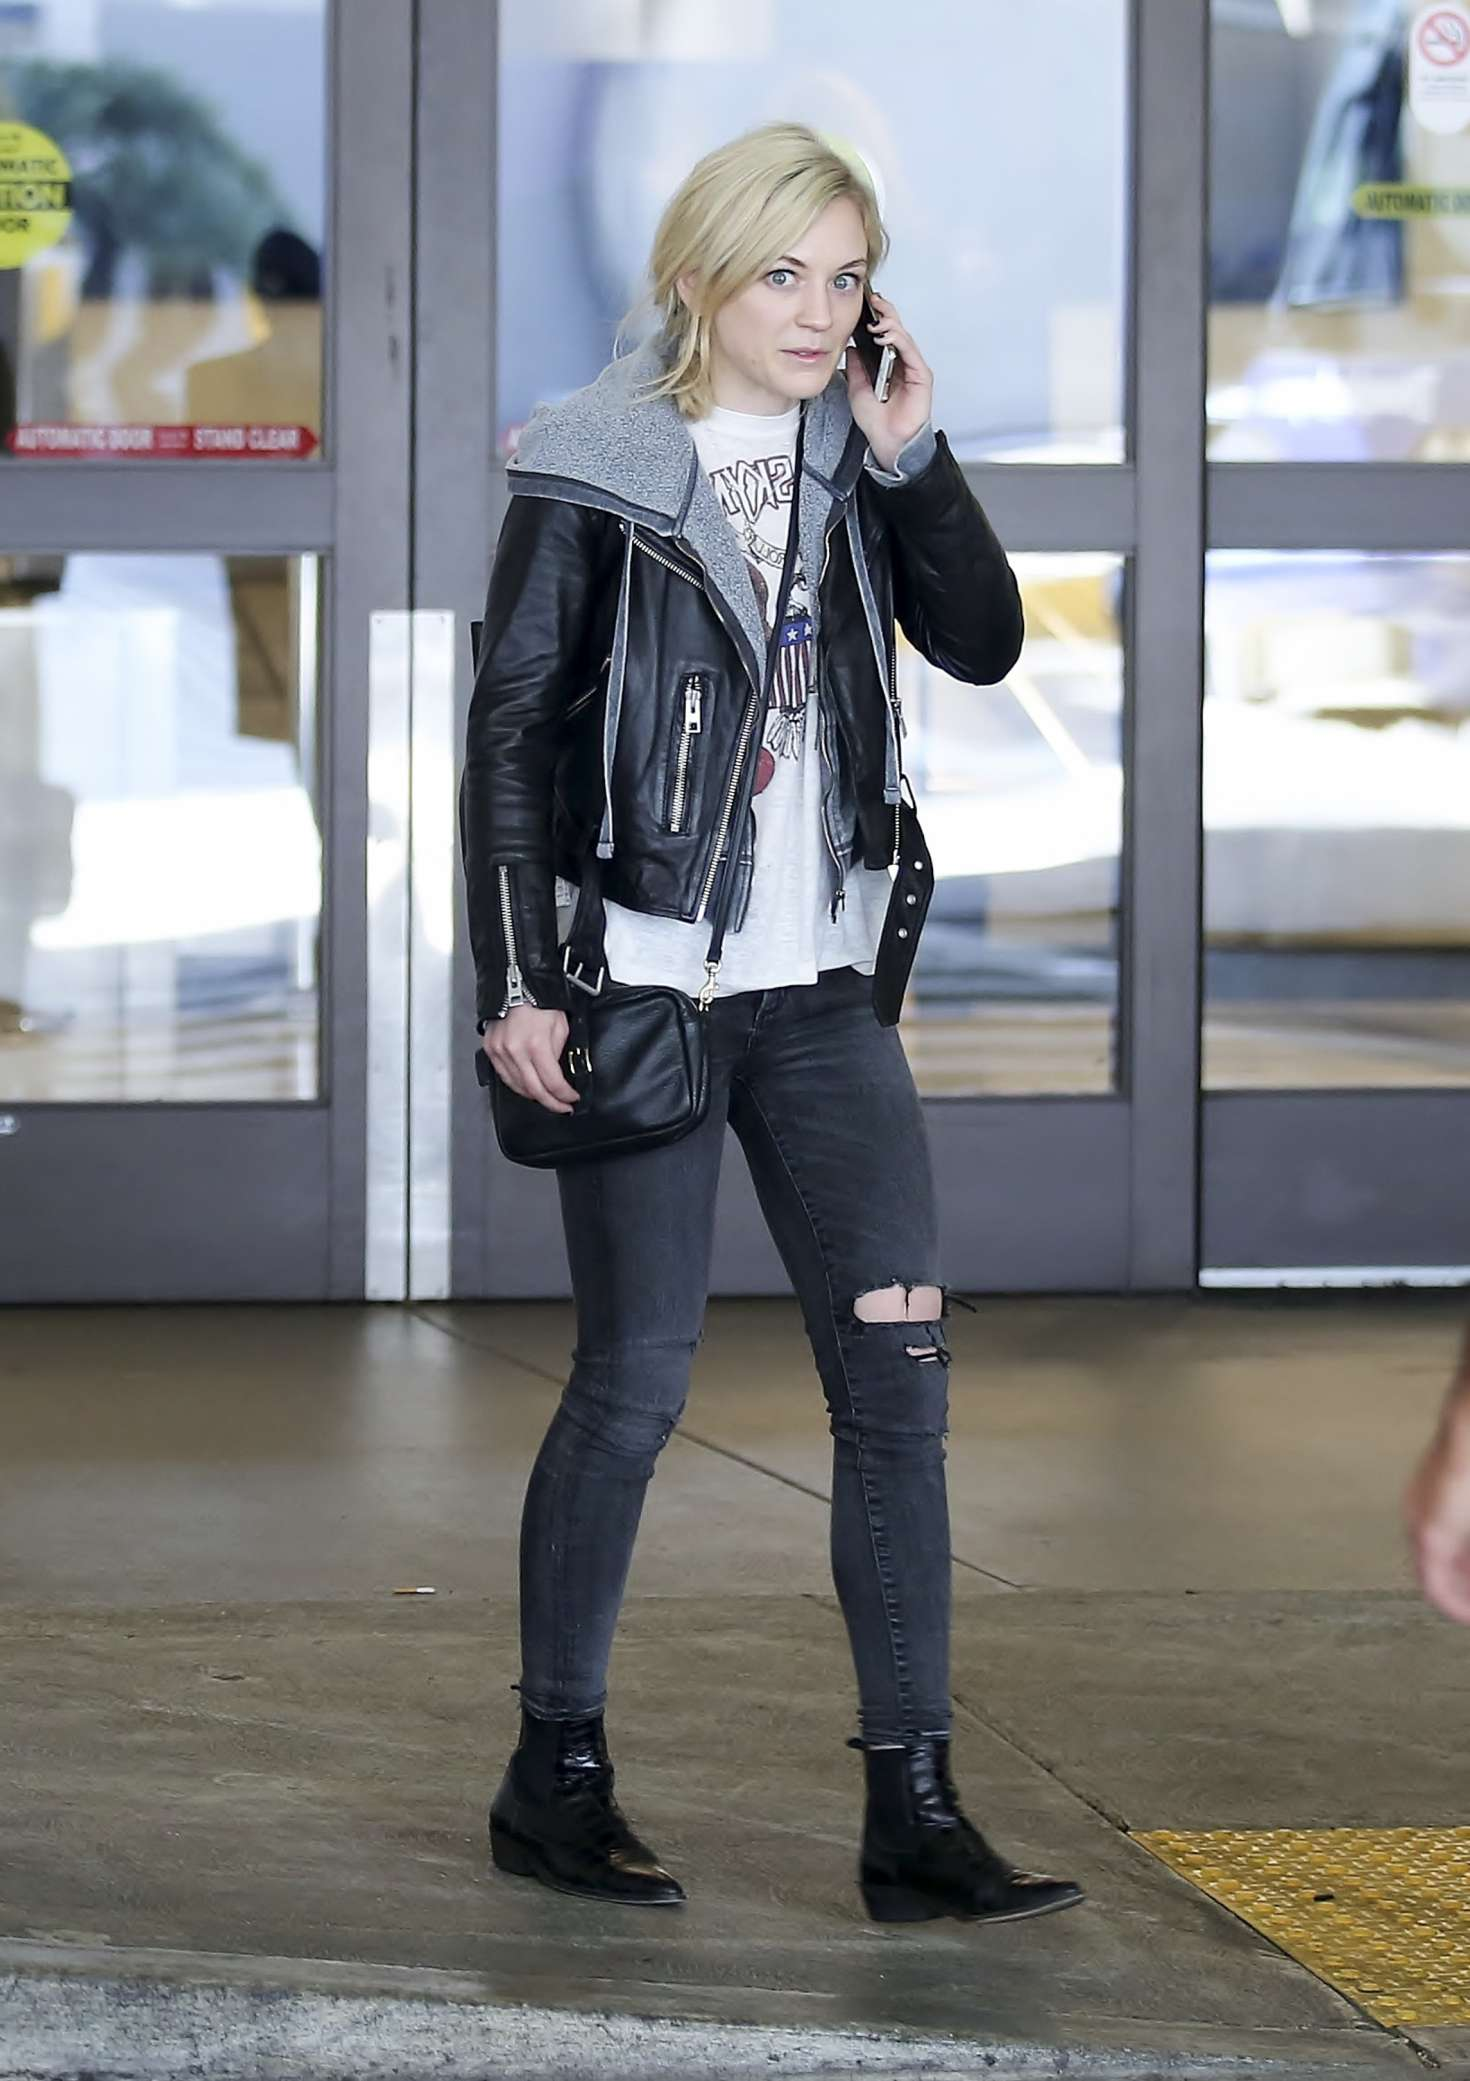 Emily Kinney 2017 : Emily Kinney at LAX Airport in LA -03